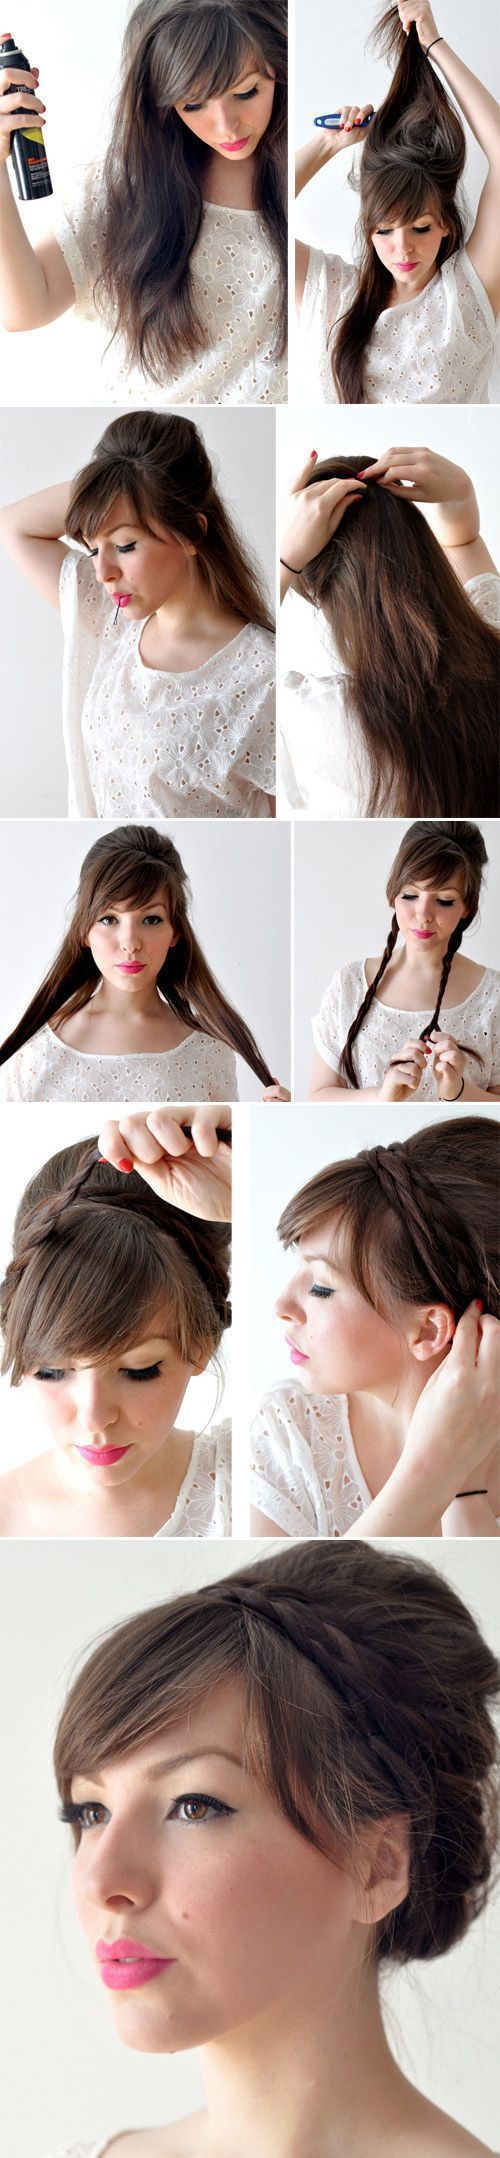 : Hairstyles, Hairdos, Hair Styles, Hair Tutorial, Makeup, Hair Do, Updos, Easy Updo